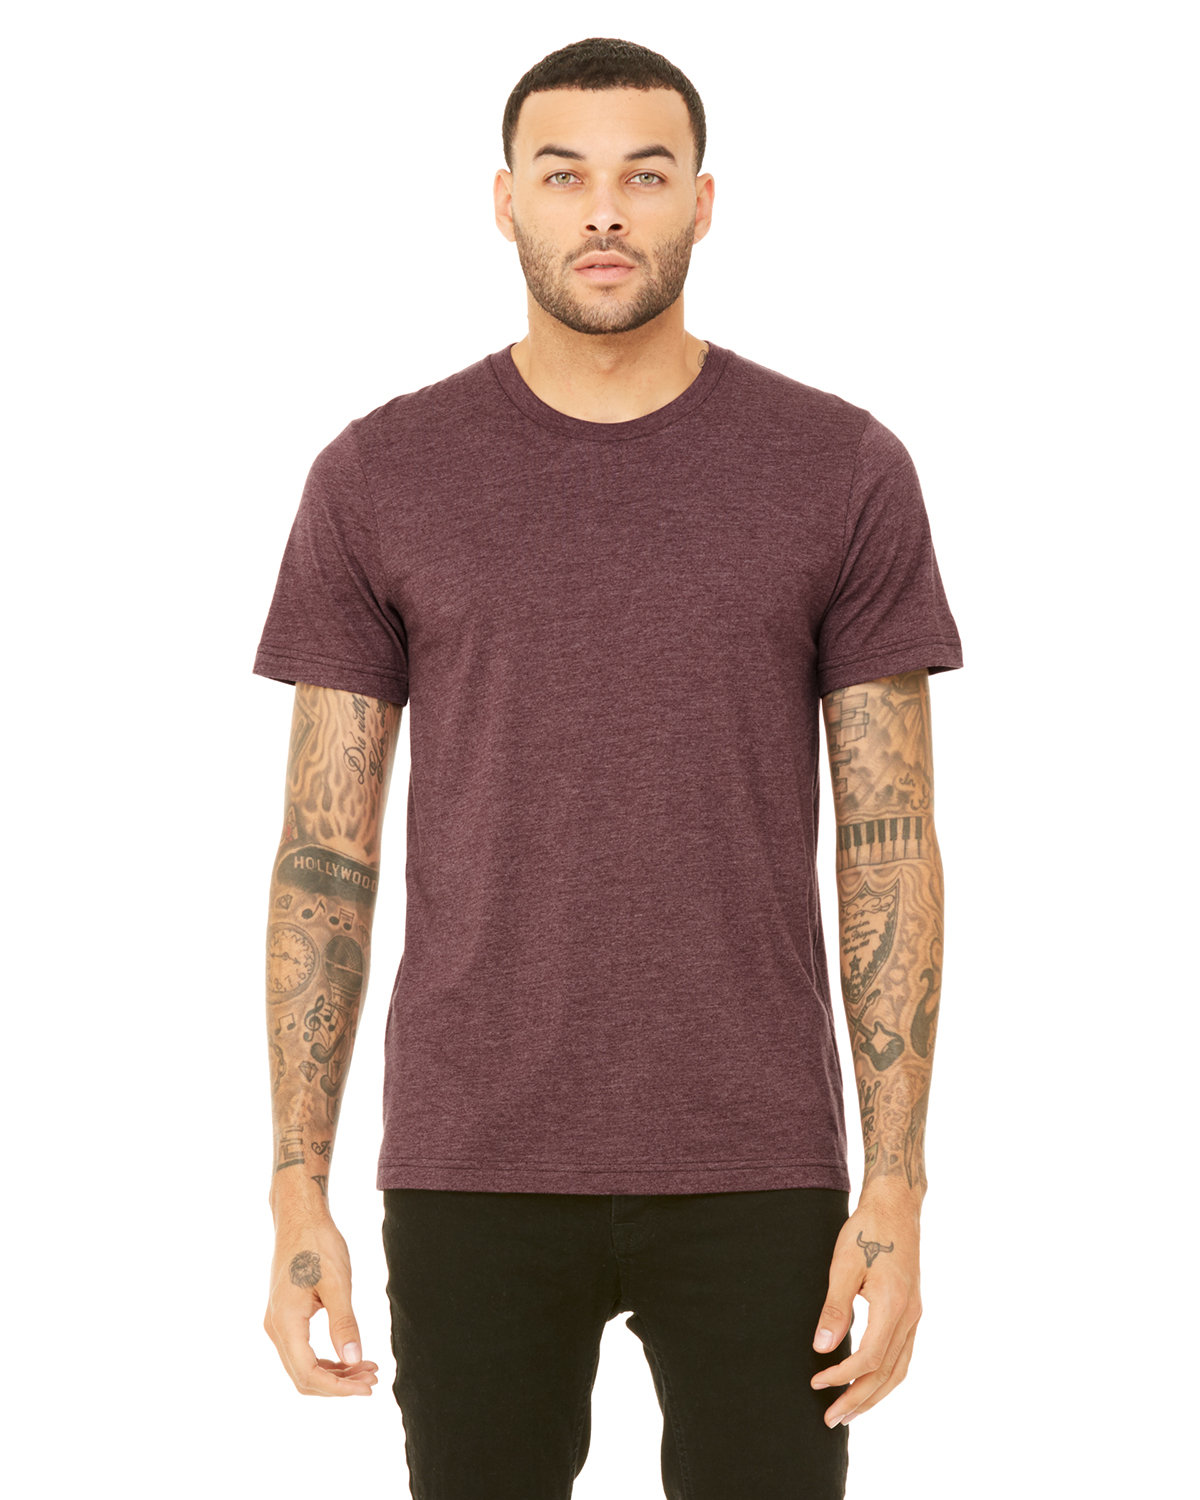 Bella + Canvas Unisex Heather CVC T-Shirt HEATHER MAROON